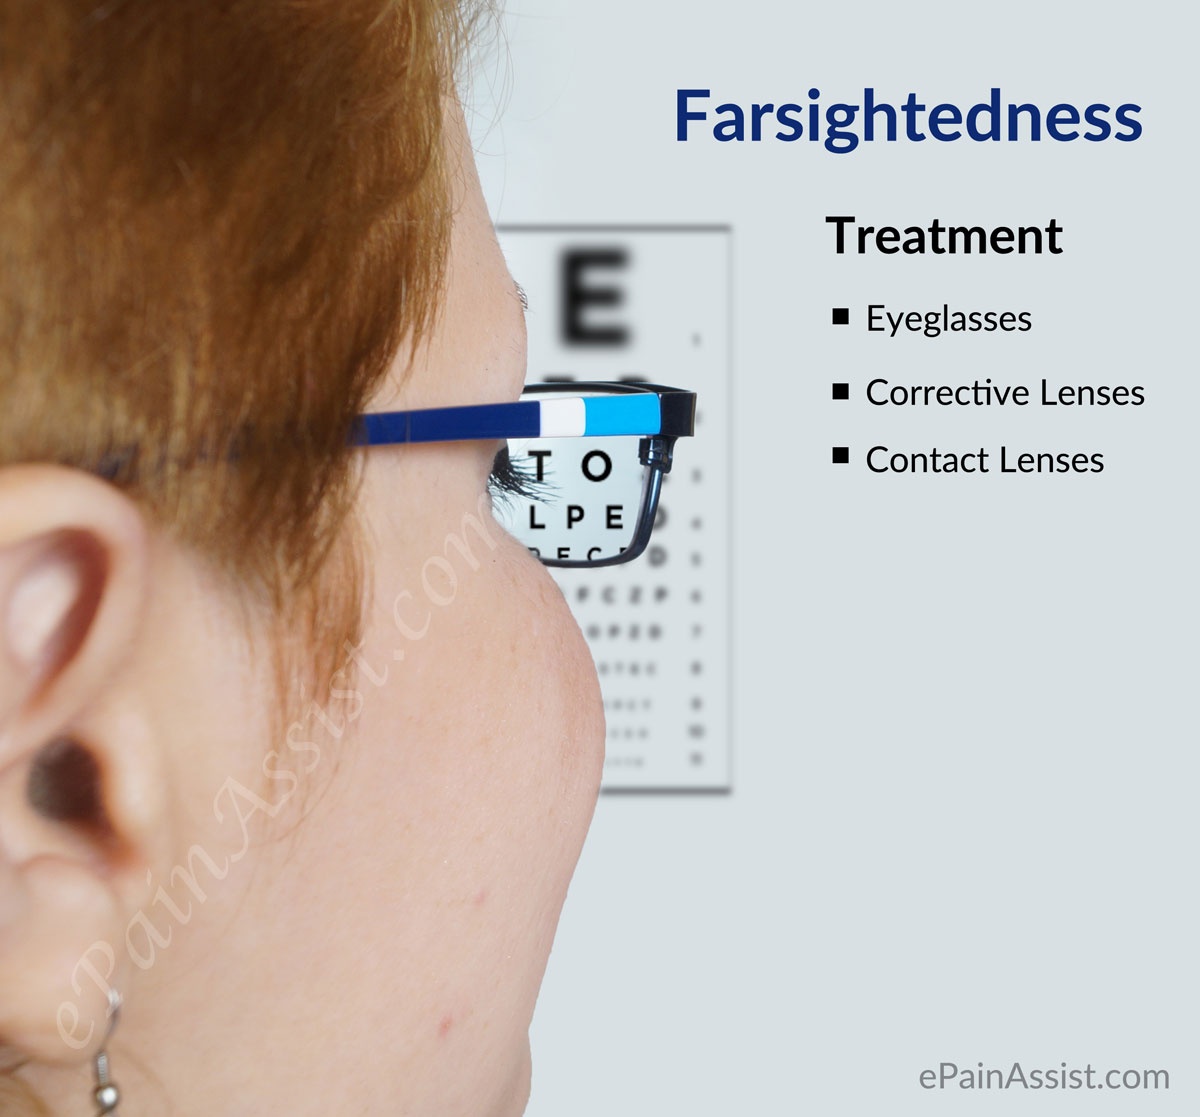 Treatment for Hyperopia or Farsightedness